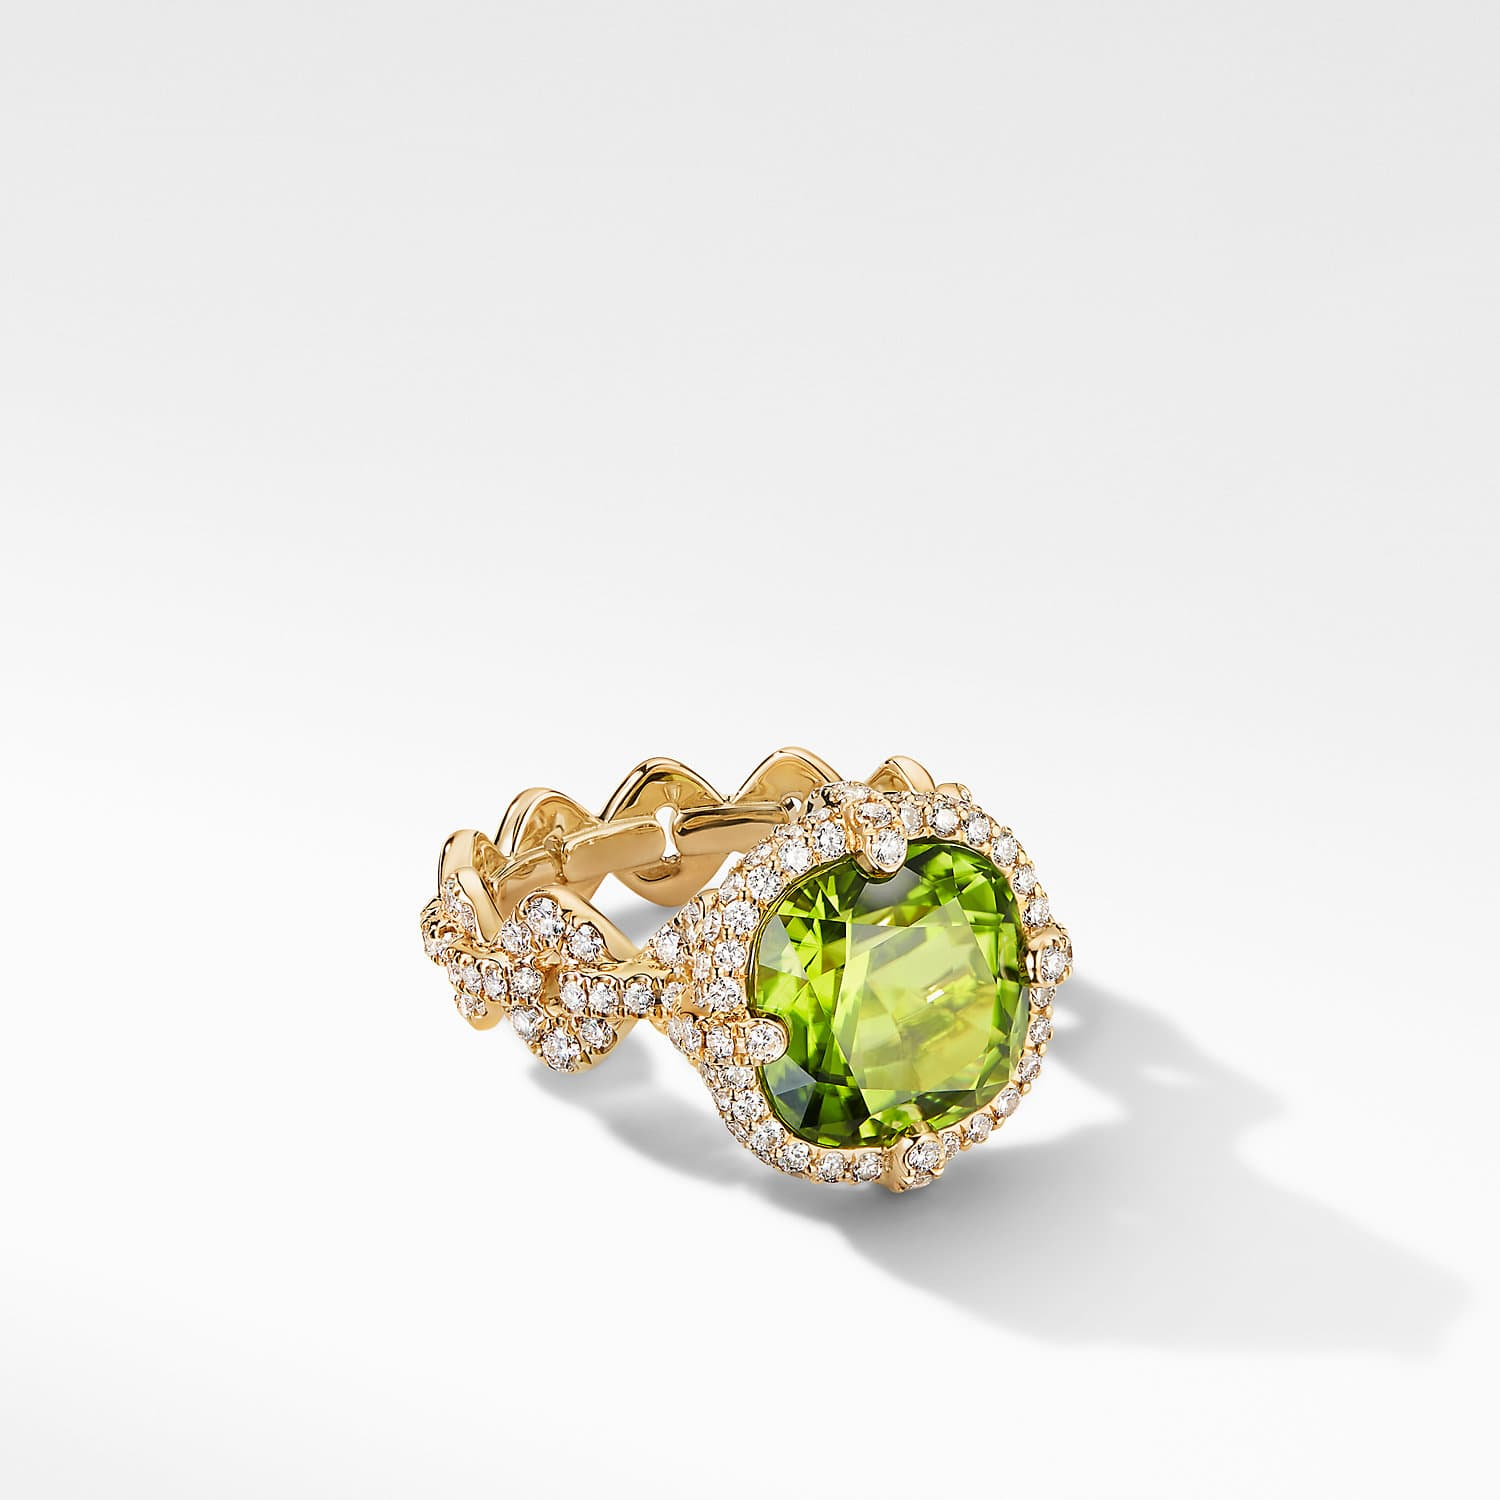 K449-COD1 Ring Stick Pearl and Peridot Size 7.5